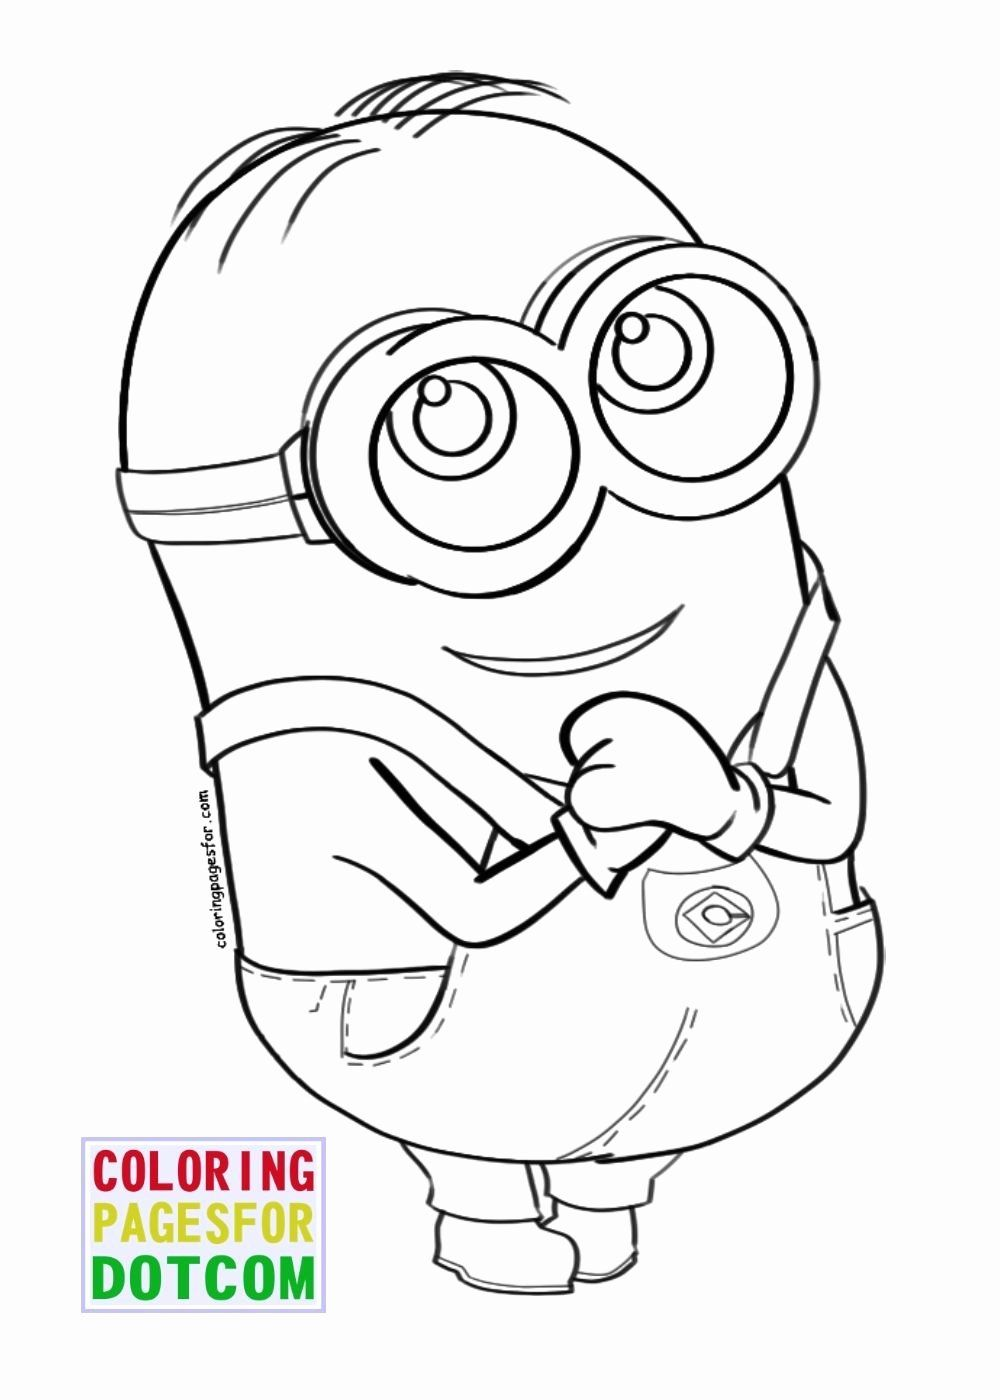 Animals Coloring Book Pdf Free Download Best Of Coloring Pages Minions Coloring Book Pdf Splendi Pr In 2020 Minion Coloring Pages Minions Coloring Pages Coloring Pages